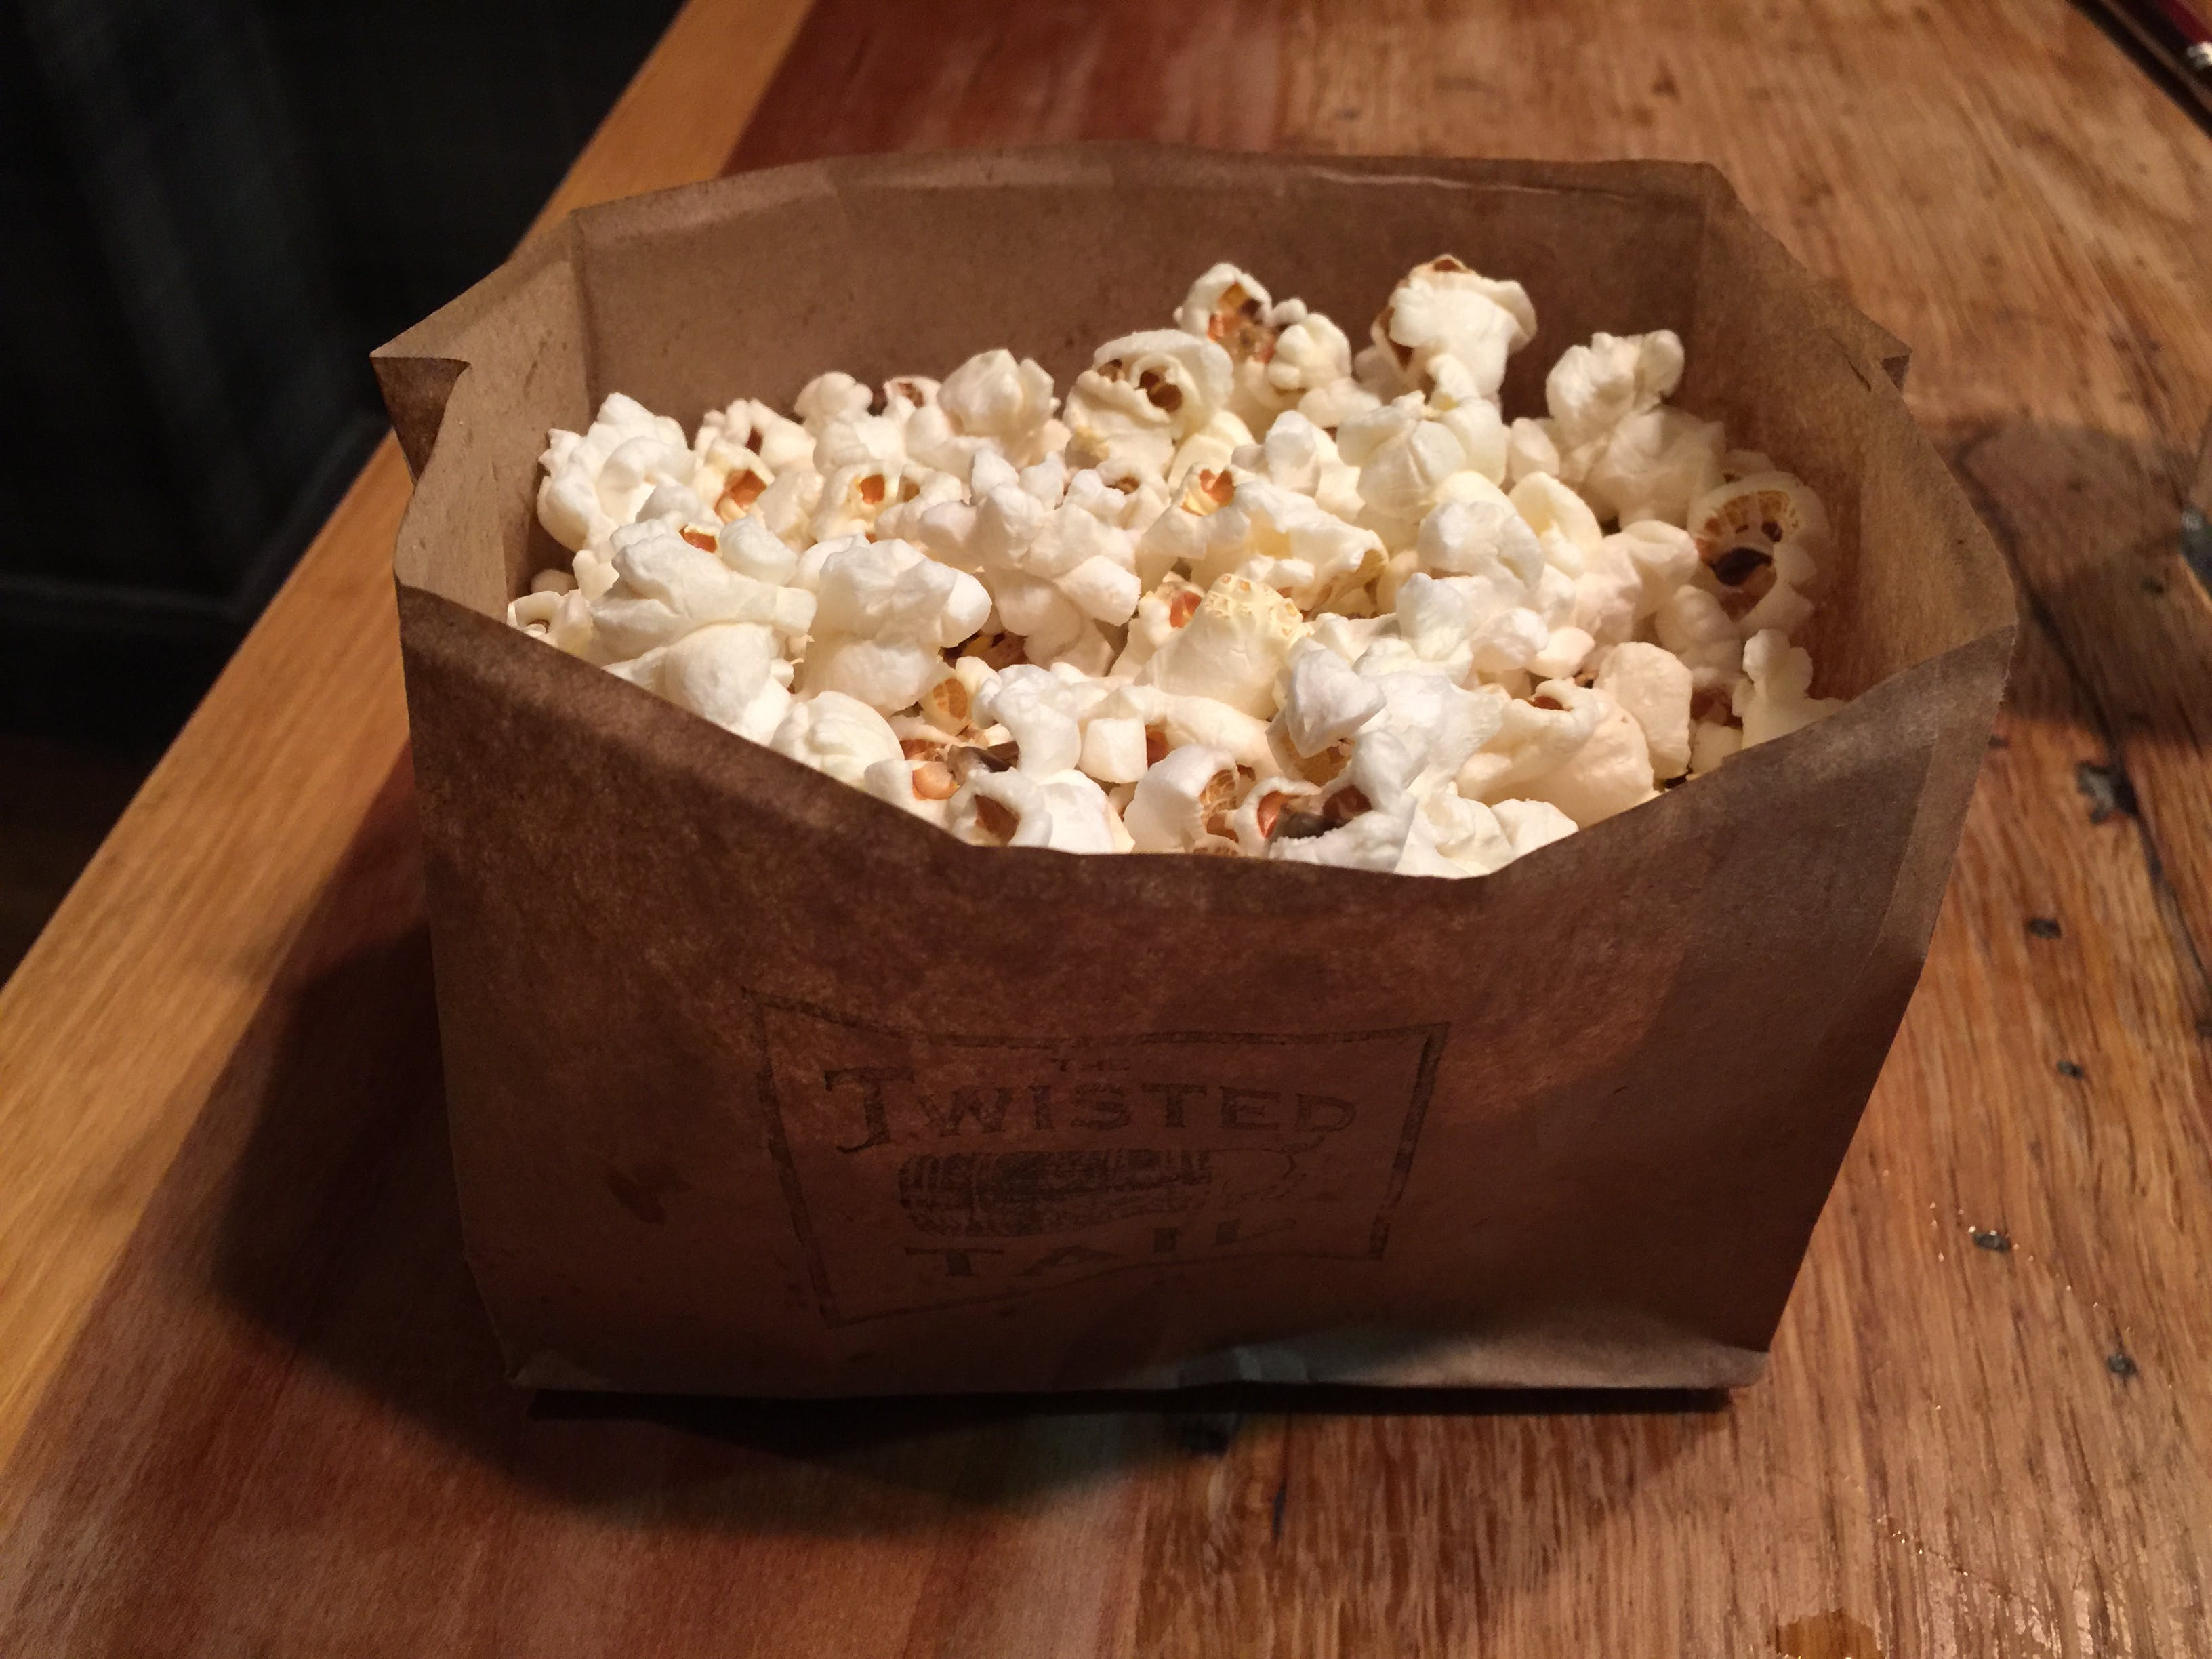 Free stock photo of paper bag, popcorn, snack